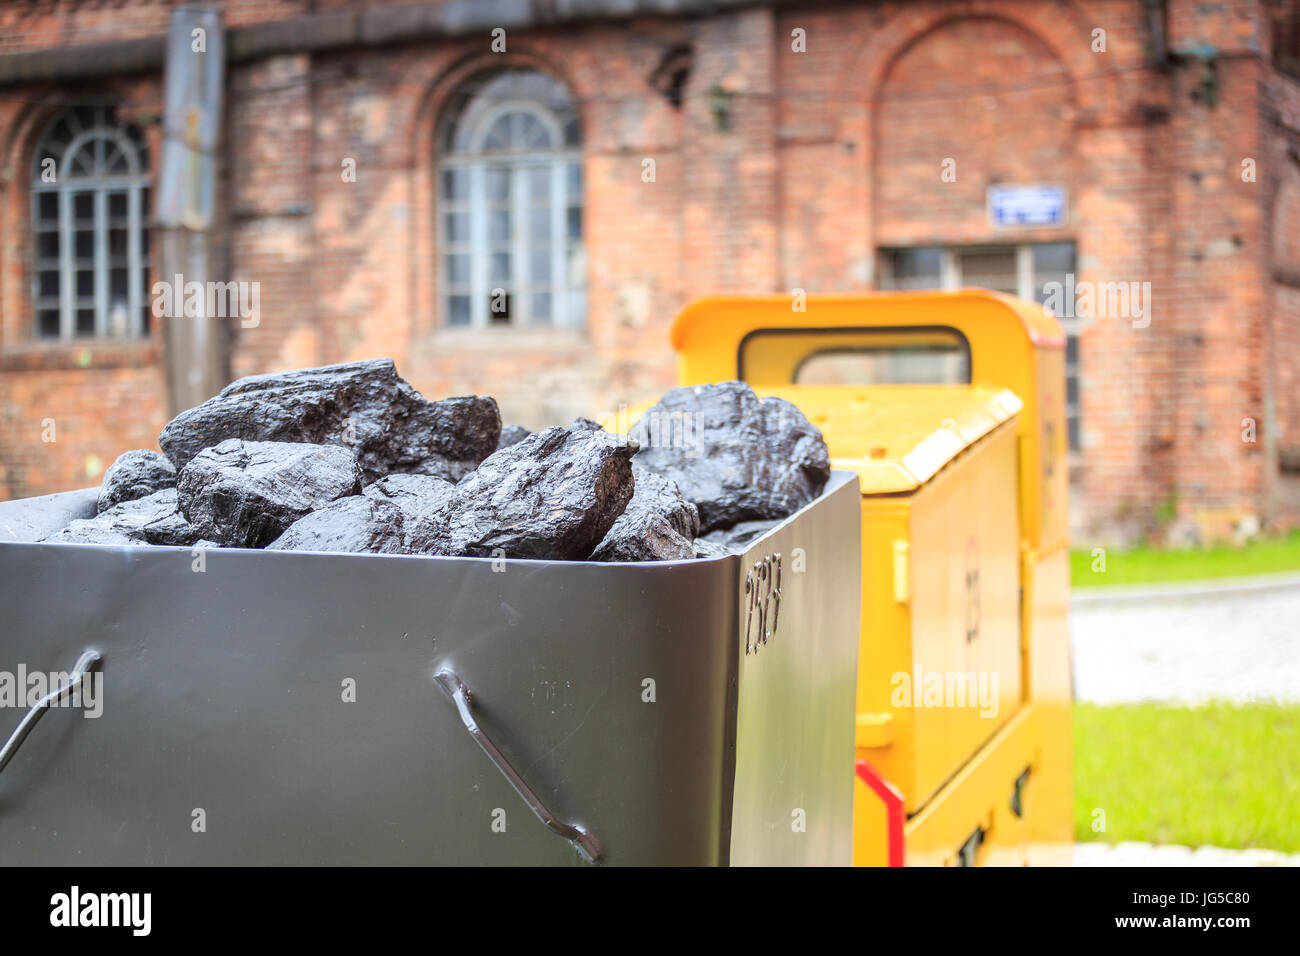 Mining drive and cart full of coal, Rybnik, Silesia - Stock Image